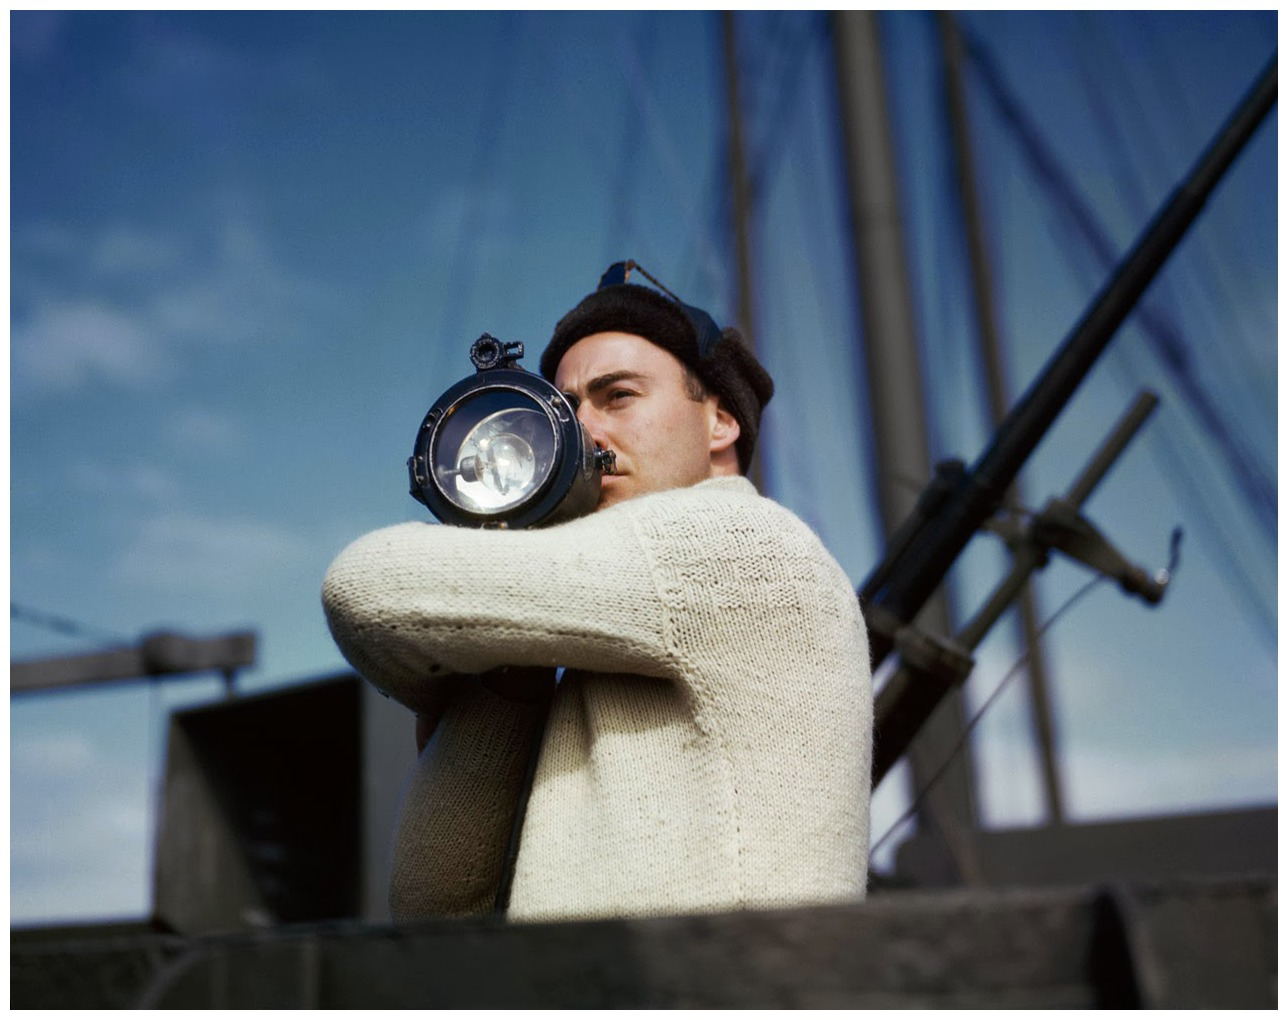 a-crewman-signals-another-ship-of-an-allied-convoy-across-the-atlantic-from-the-us-to-england-1942-photo-robert-capa